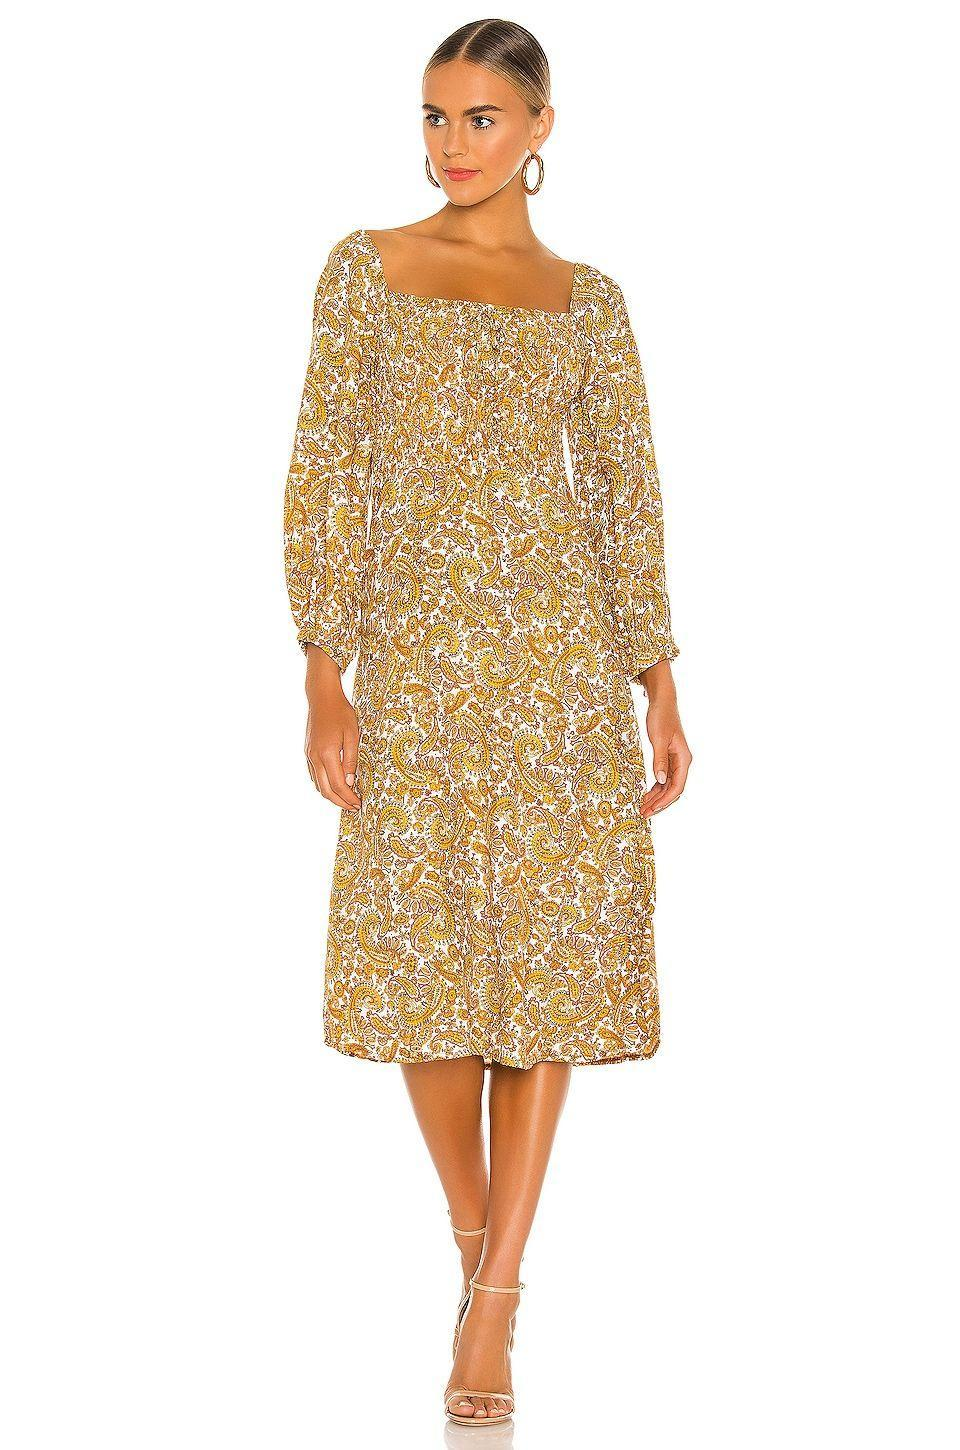 """<p><strong>FAITHFULL THE BRAND</strong></p><p>revolve.com</p><p><strong>$199.00</strong></p><p><a href=""""https://go.redirectingat.com?id=74968X1596630&url=https%3A%2F%2Fwww.revolve.com%2Fdp%2FFAIB-WD312%2F&sref=https%3A%2F%2Fwww.womenshealthmag.com%2Flife%2Fg36173394%2Fsummer-wedding-guest-dresses%2F"""" rel=""""nofollow noopener"""" target=""""_blank"""" data-ylk=""""slk:Shop Now"""" class=""""link rapid-noclick-resp"""">Shop Now</a></p><p>Take advantage of the fact that bold prints rule the summer, and show up in this cute paisley print midi dress. You'll look stunning next to all of the flowers. </p>"""